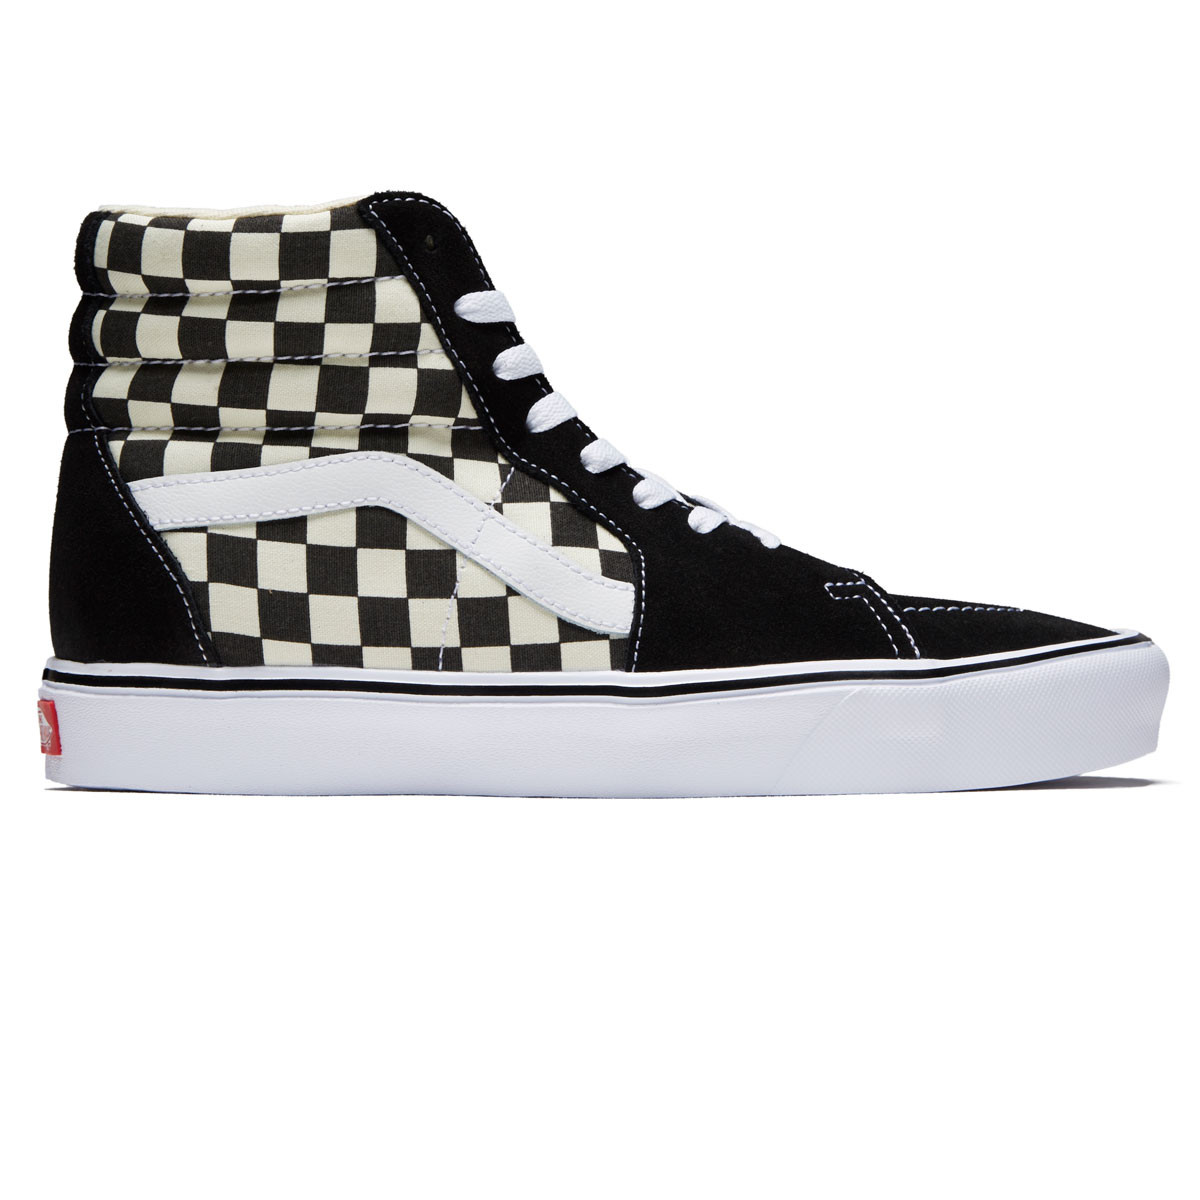 a26559c2718140 Vans Sk8-Hi Lite Shoes - Black White Checkerboard - 10.0